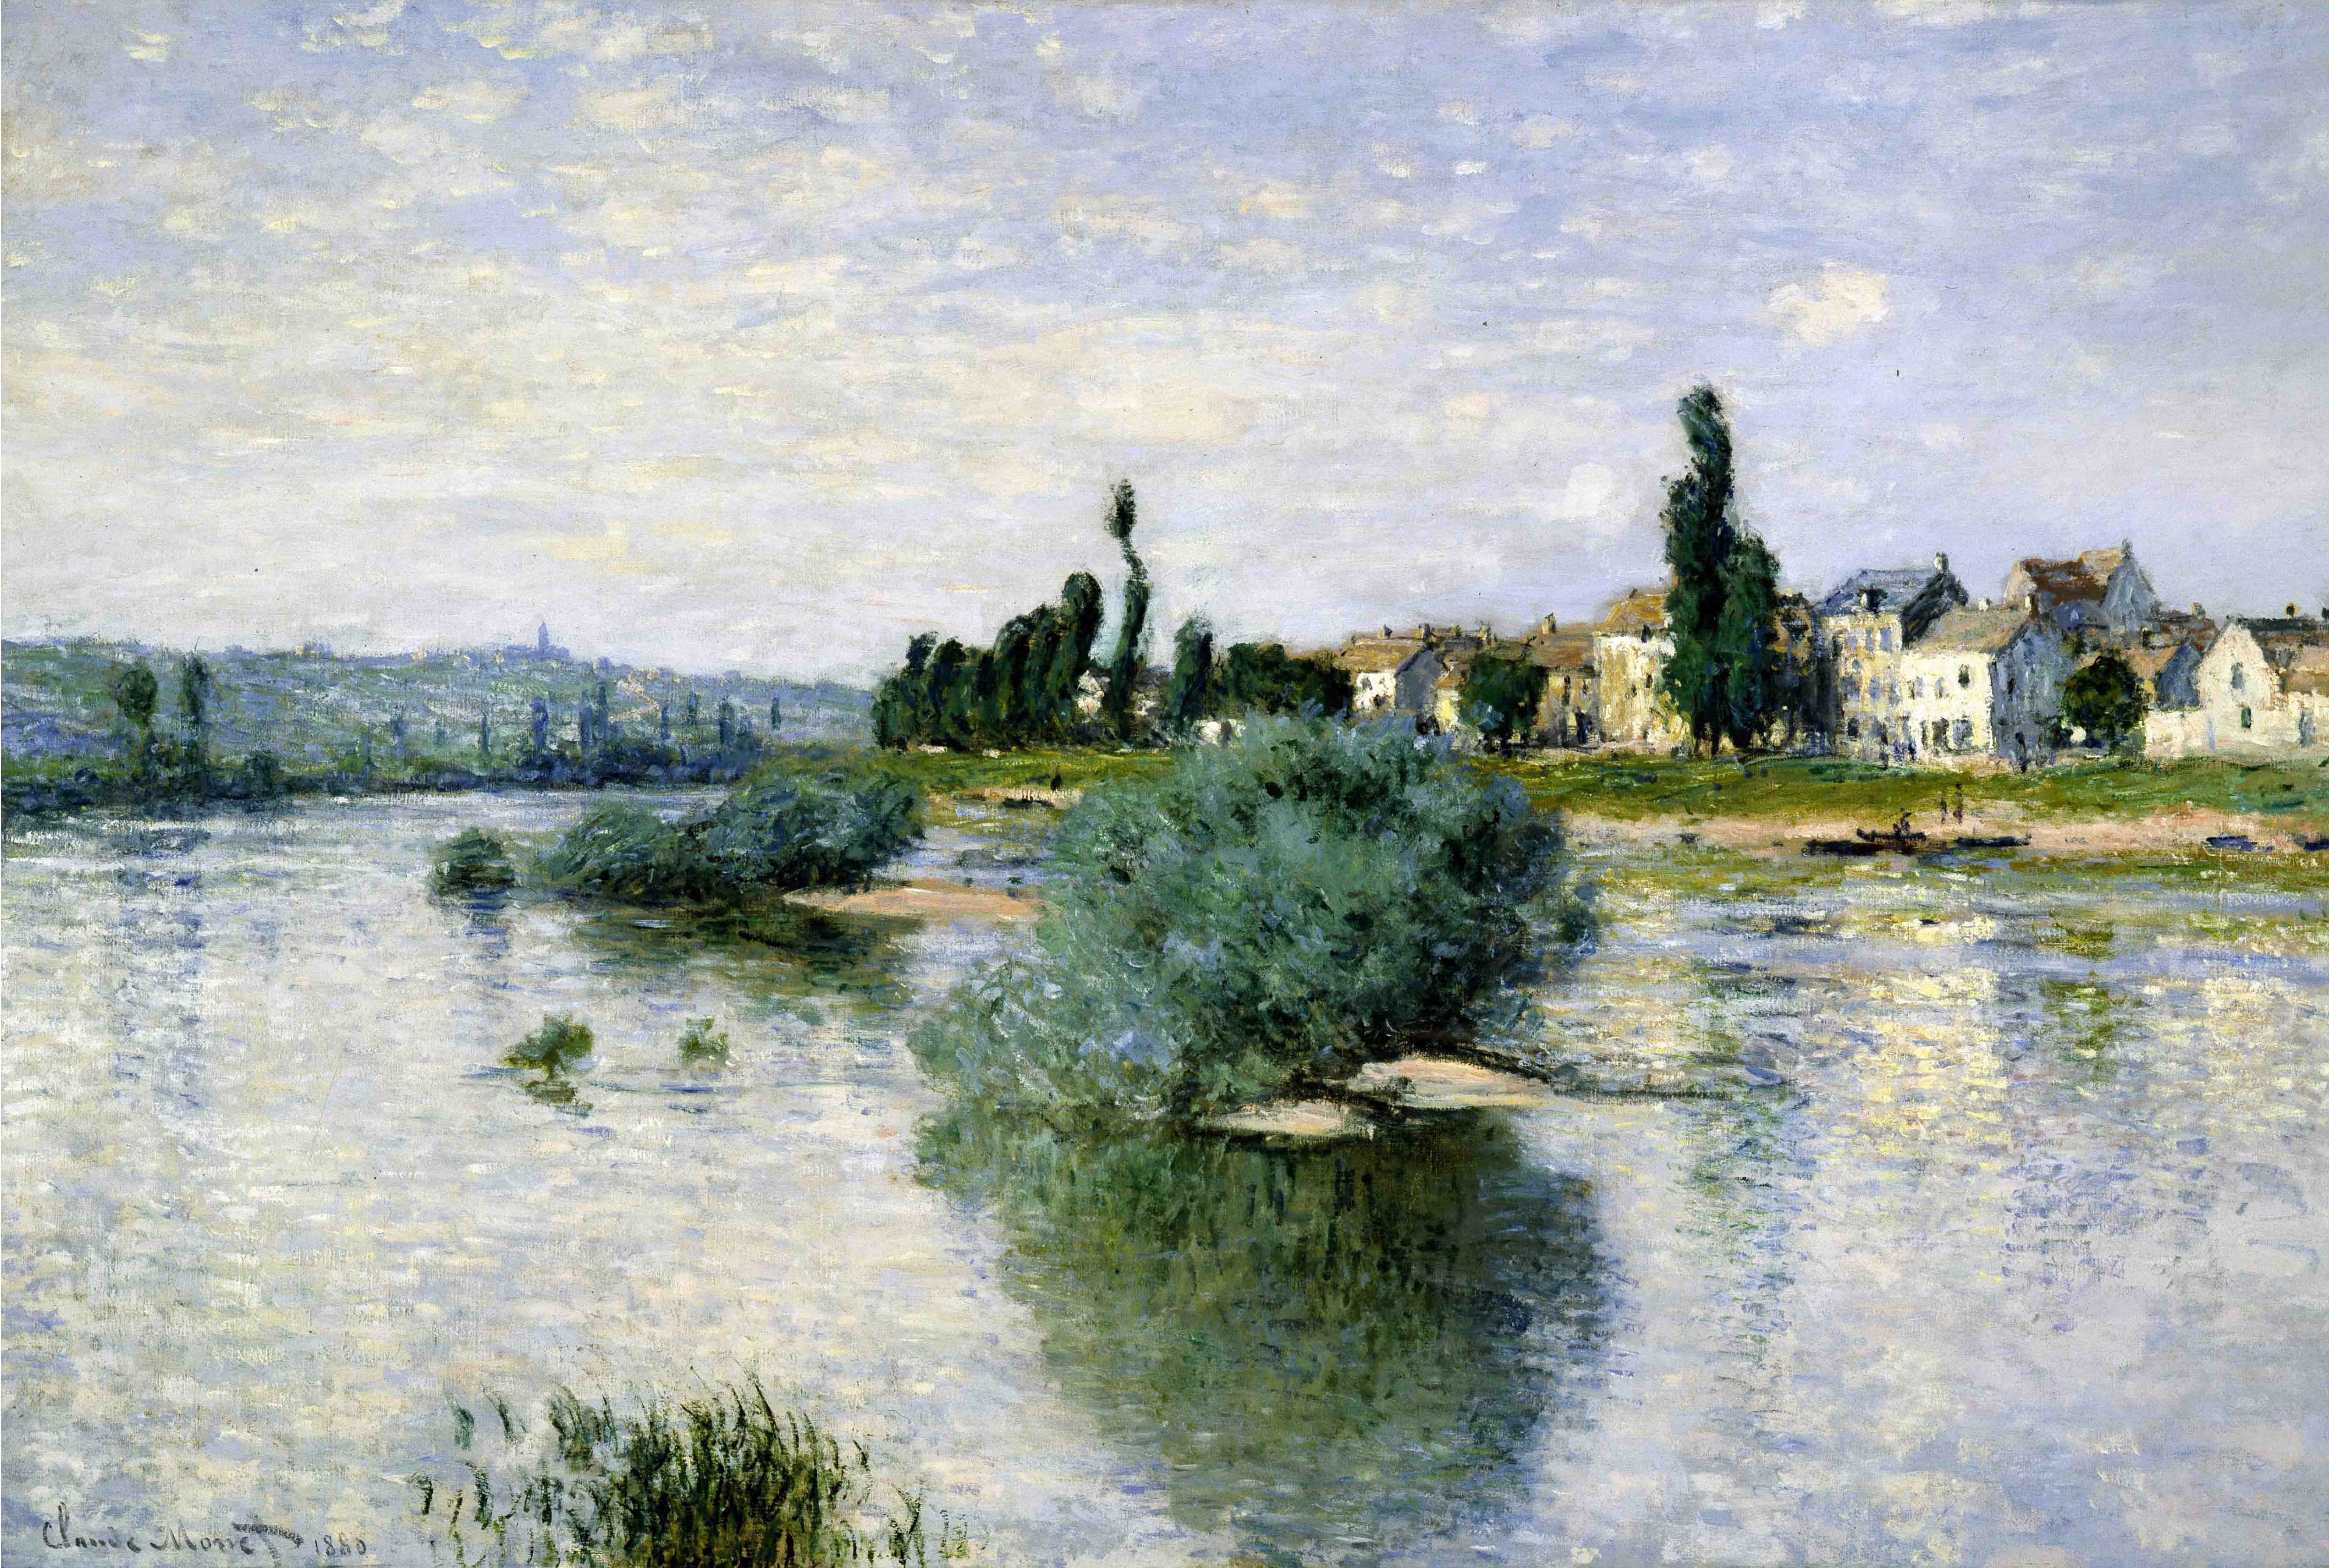 Claude Monet, La Seine à Lavacourt, 1880 © Foto: Scottish National Gallery